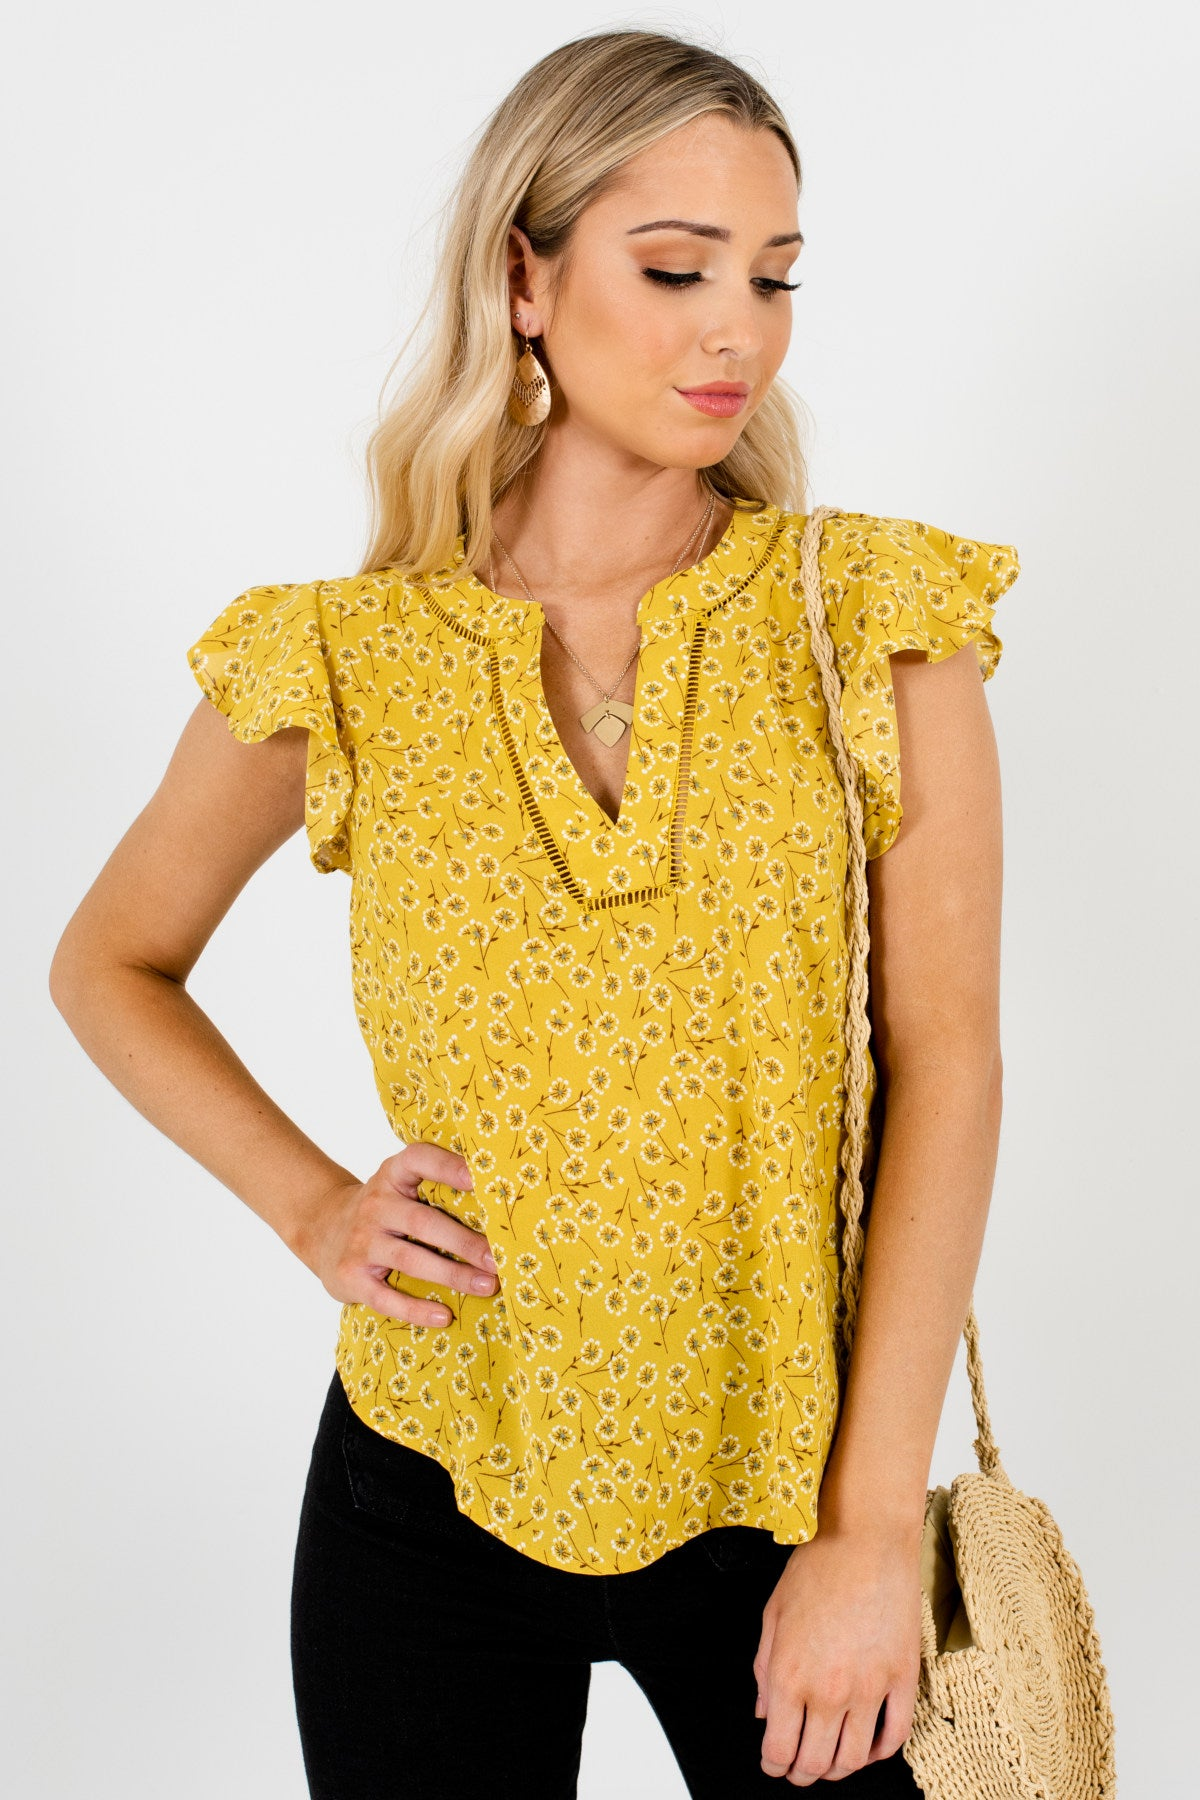 Yellow Dandelion Print Floral Blouses with Ruffle Sleeves and Lace Accents